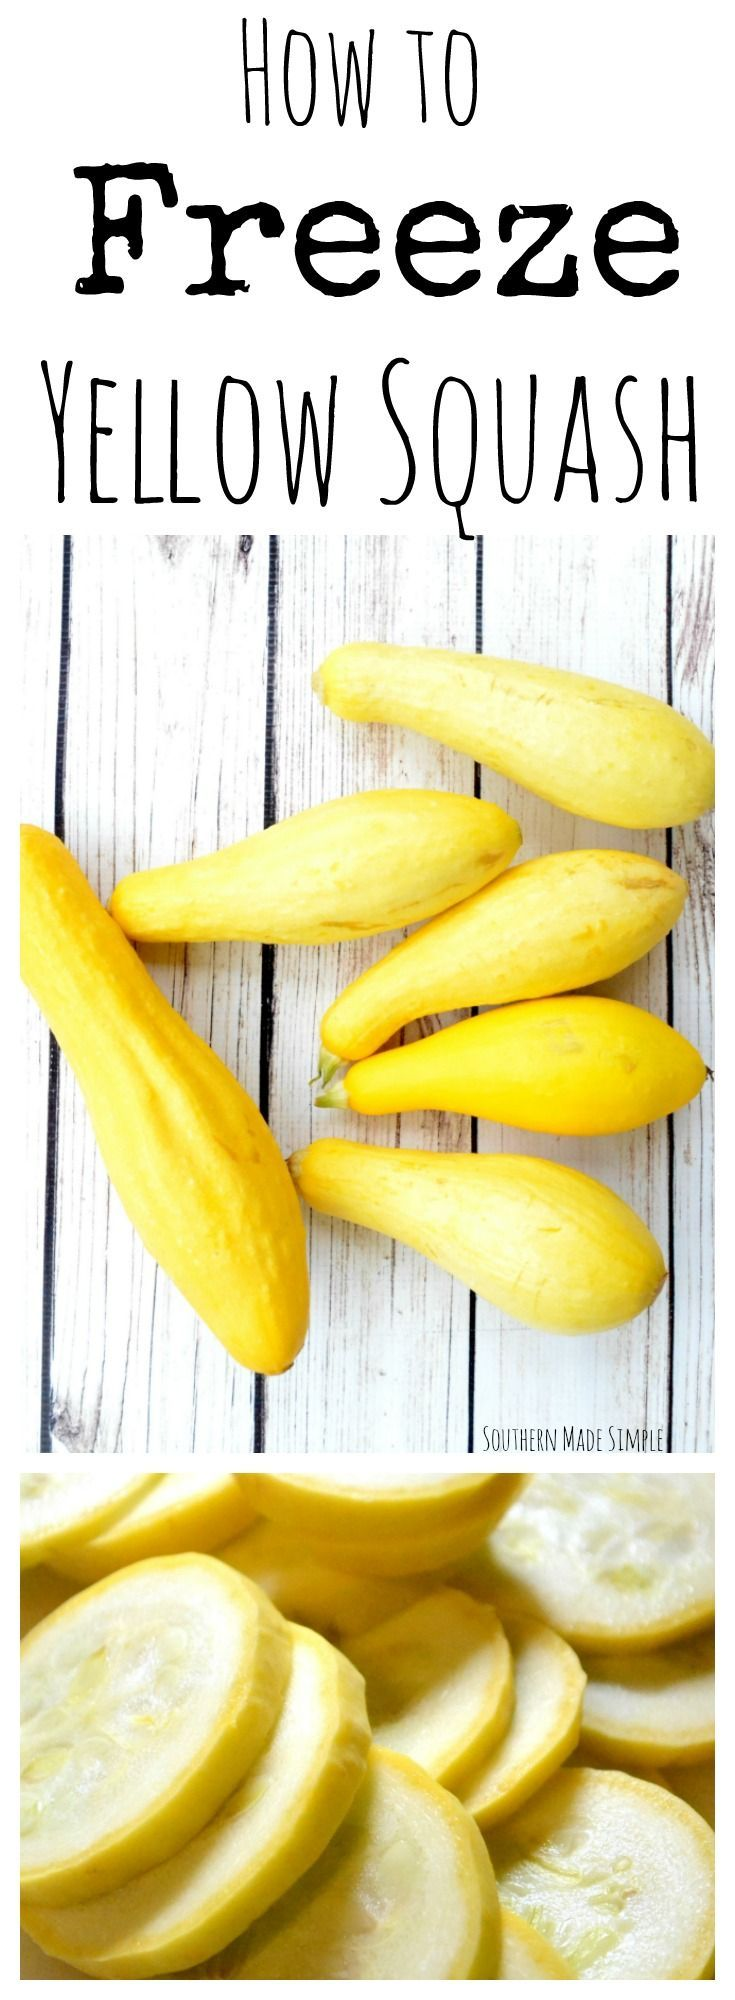 Do you have an abundance of yellow summer squash this summer? Don't throw it out! Use this simple step by step guide to freeze your squash and enjoy it all year long!